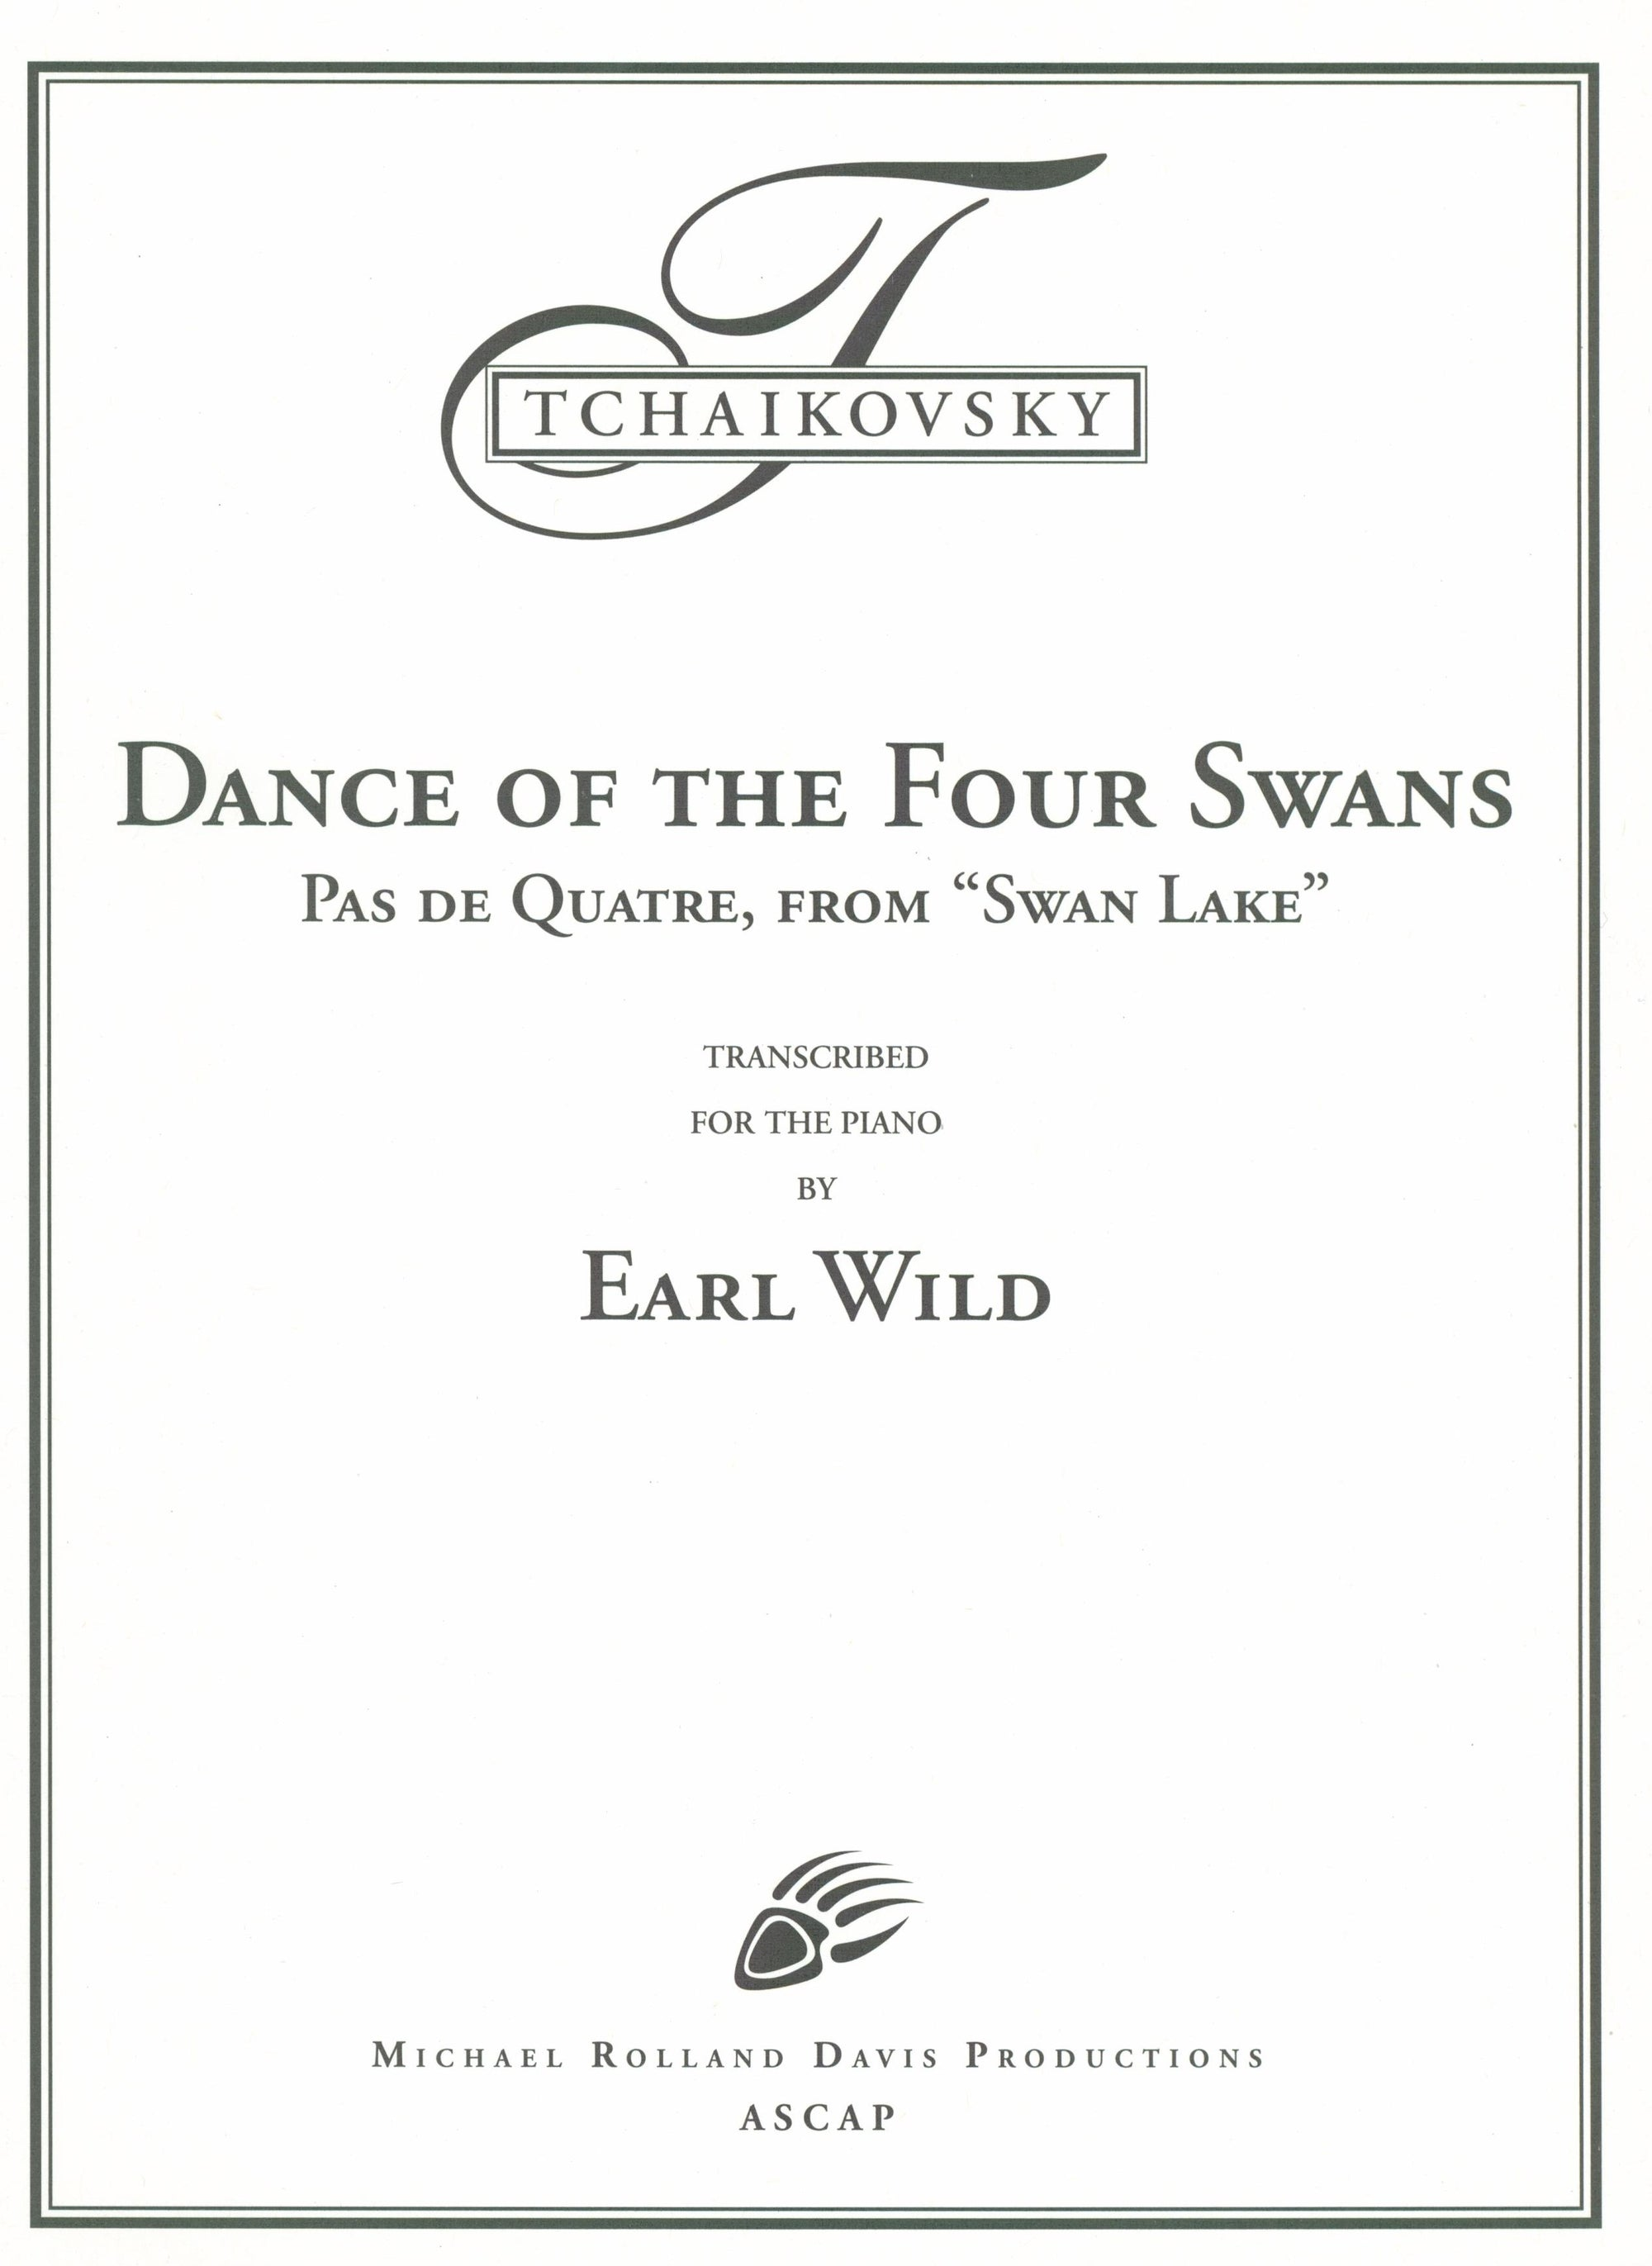 Tchaikovsky-Wild: Dance of the Four Swans